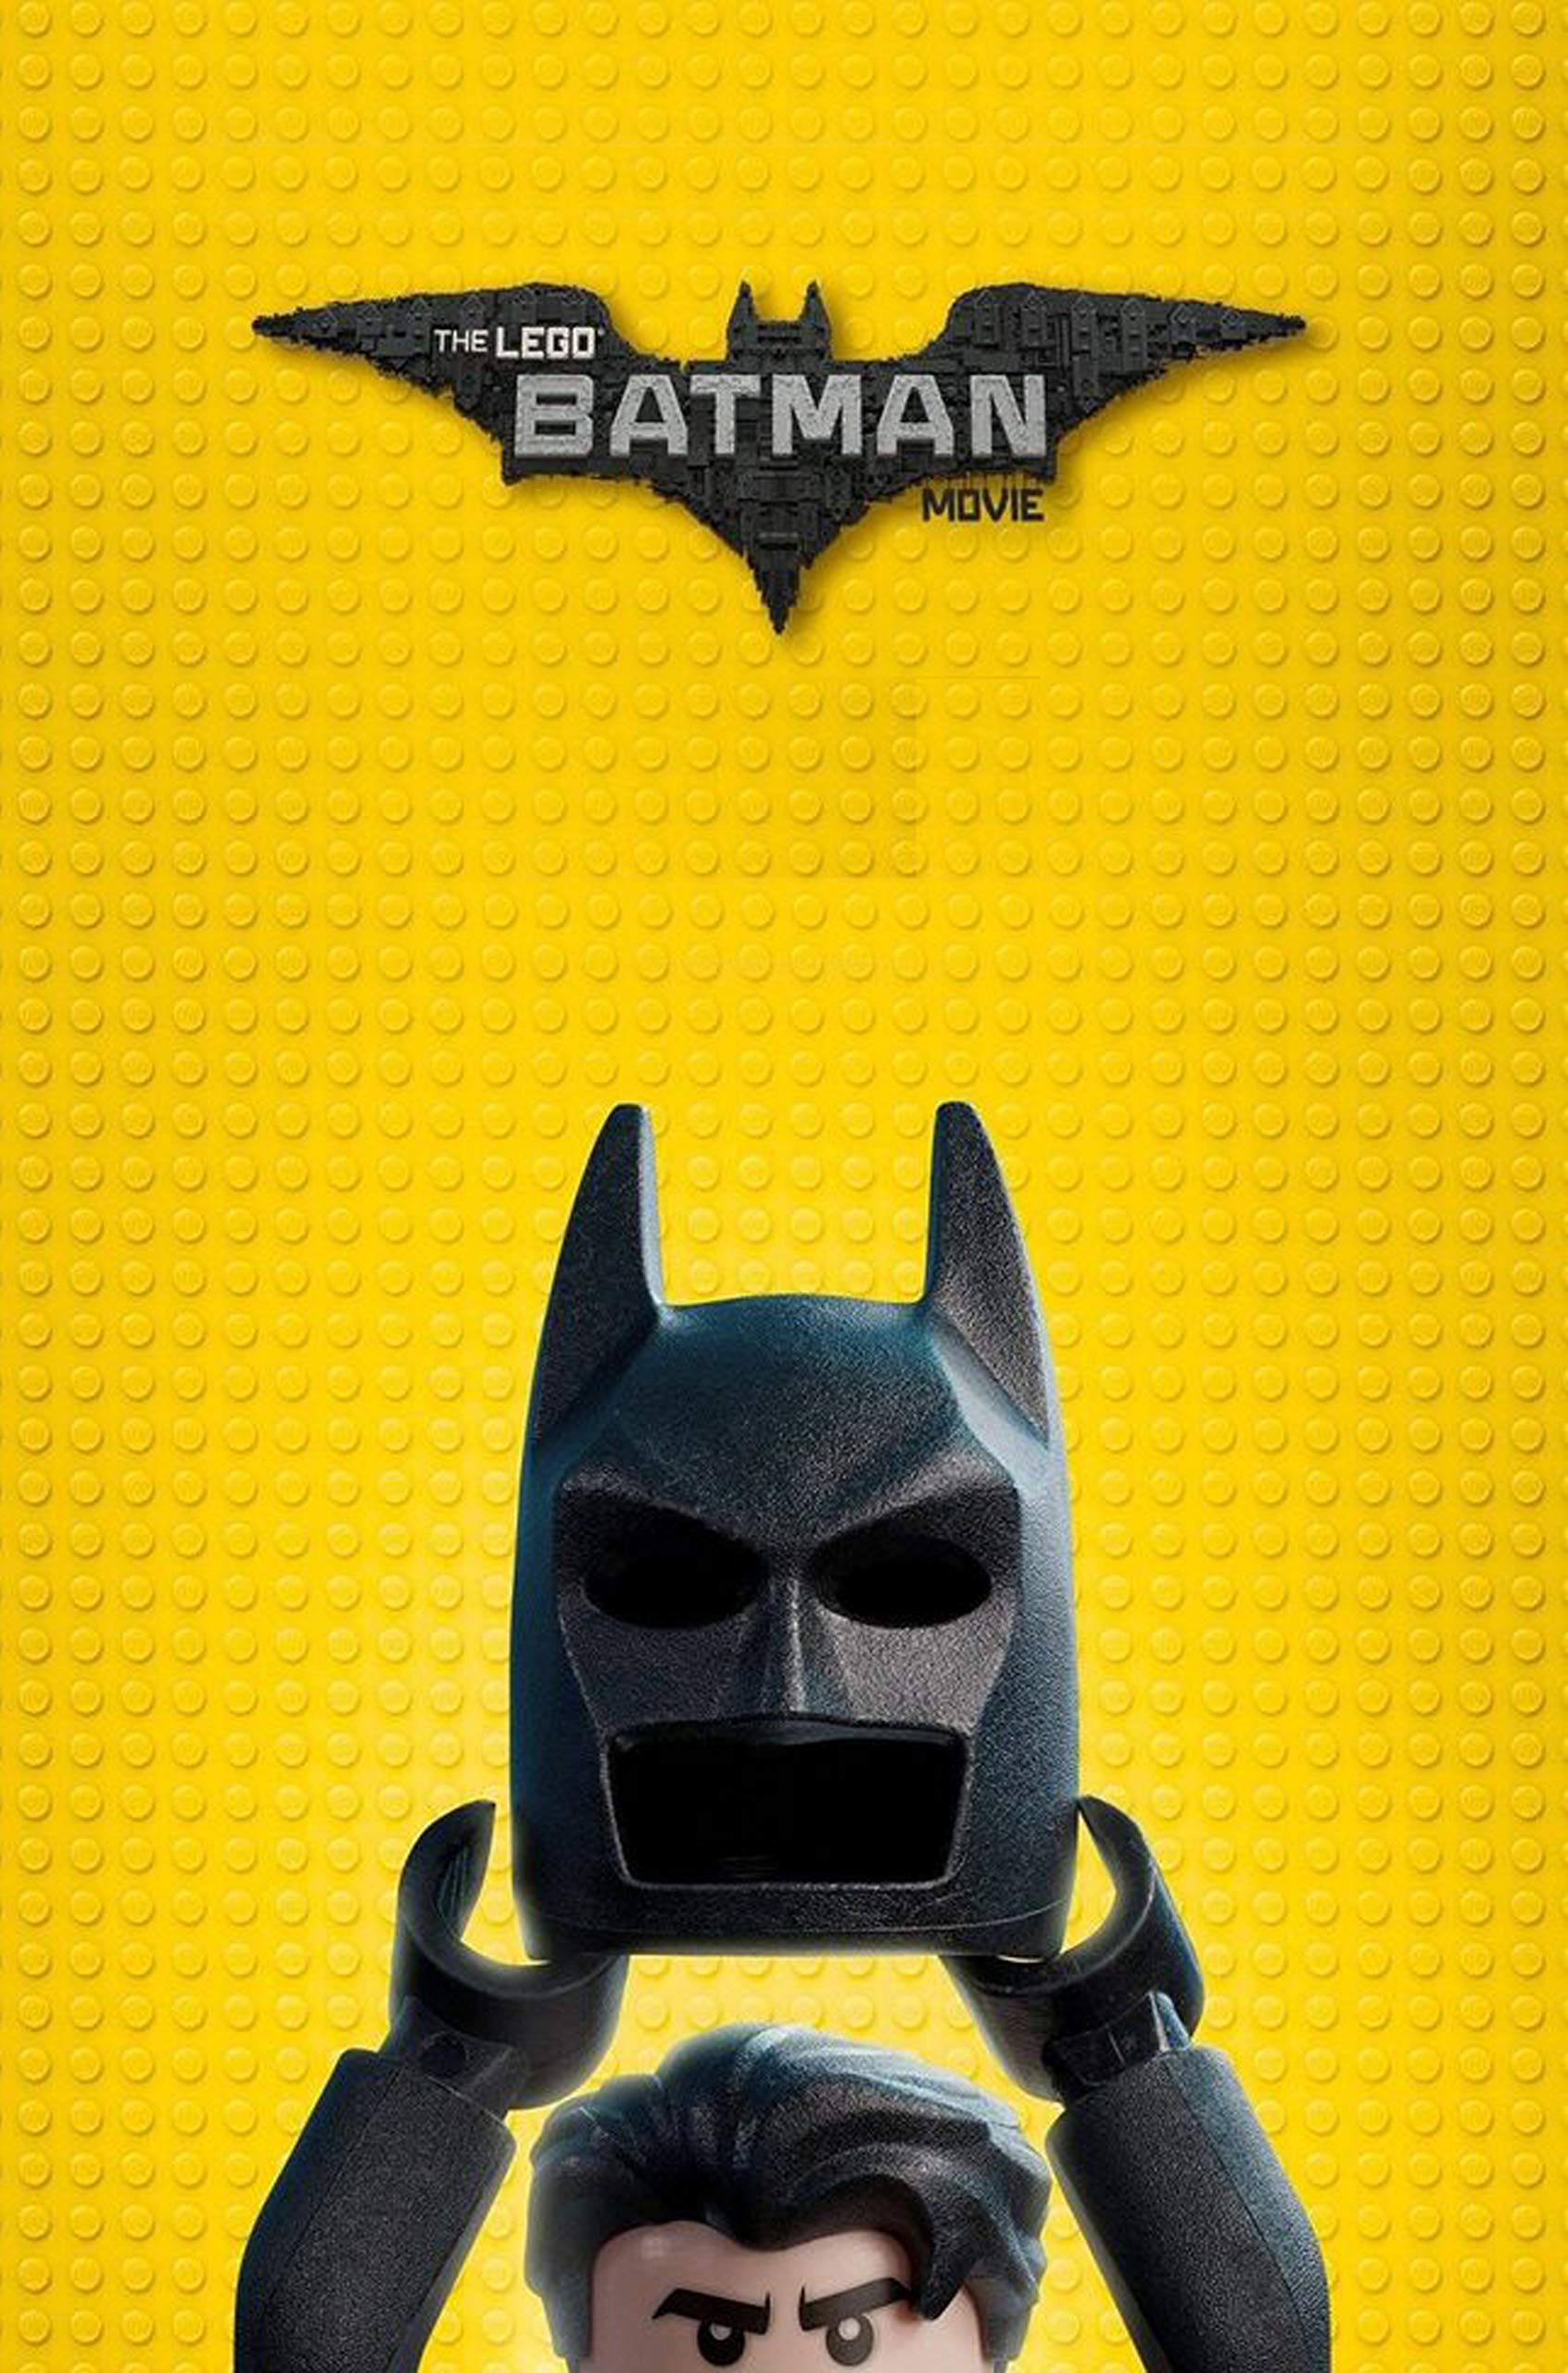 The LEGO Batman Movie: The Complete Screenplays